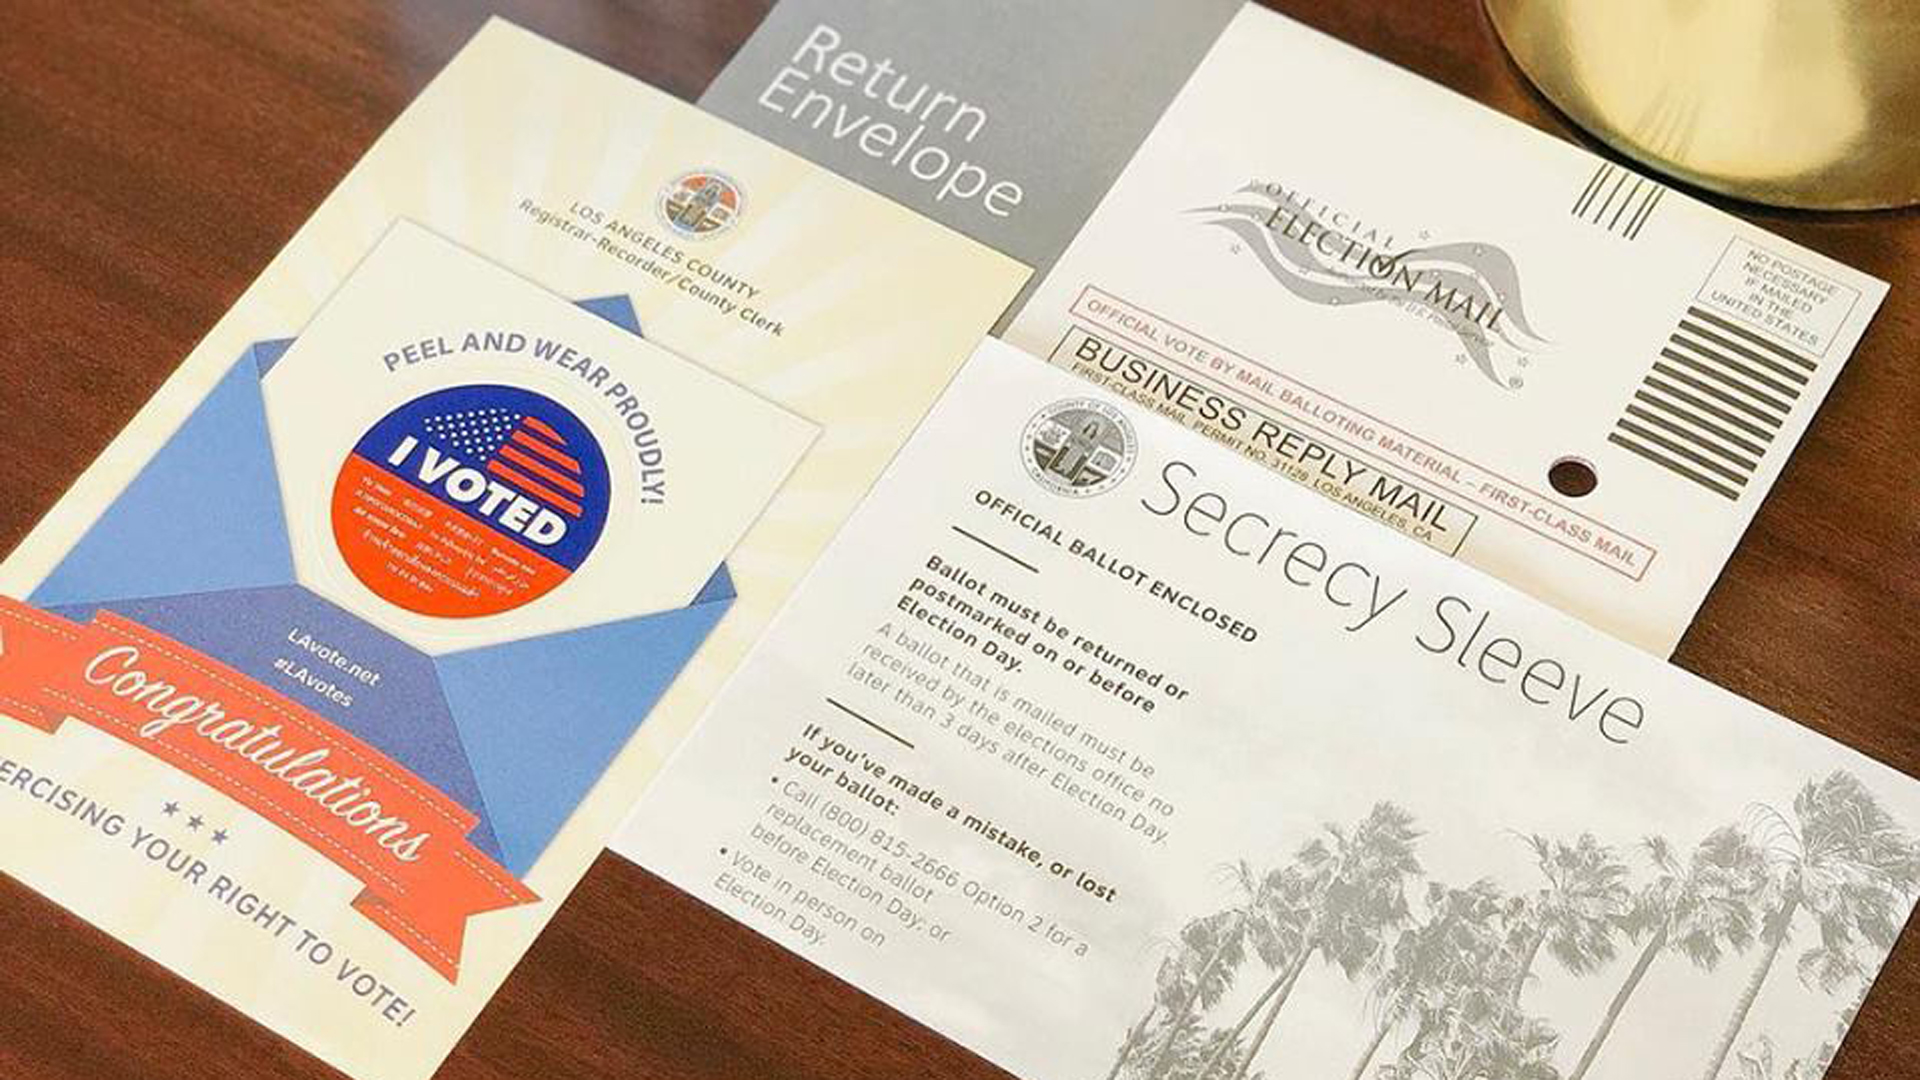 A vote-by-mail ballot packet is seen in an image released by the Los Angeles County Registrar-Recorder on Oct. 9, 2018.